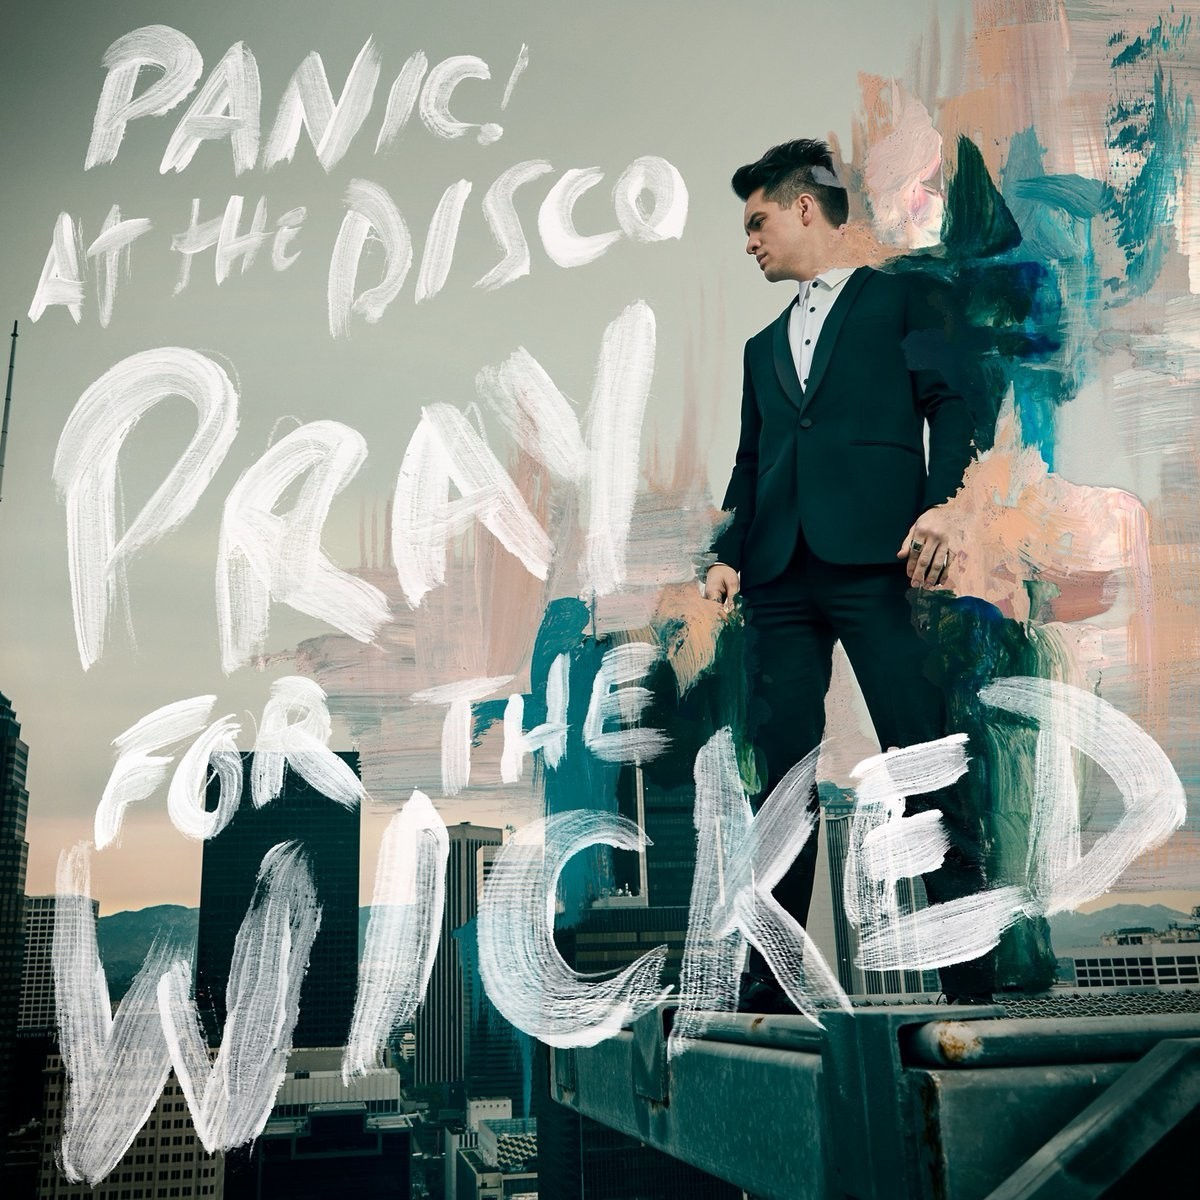 Panic! At The Disco — CONCERT ALERT